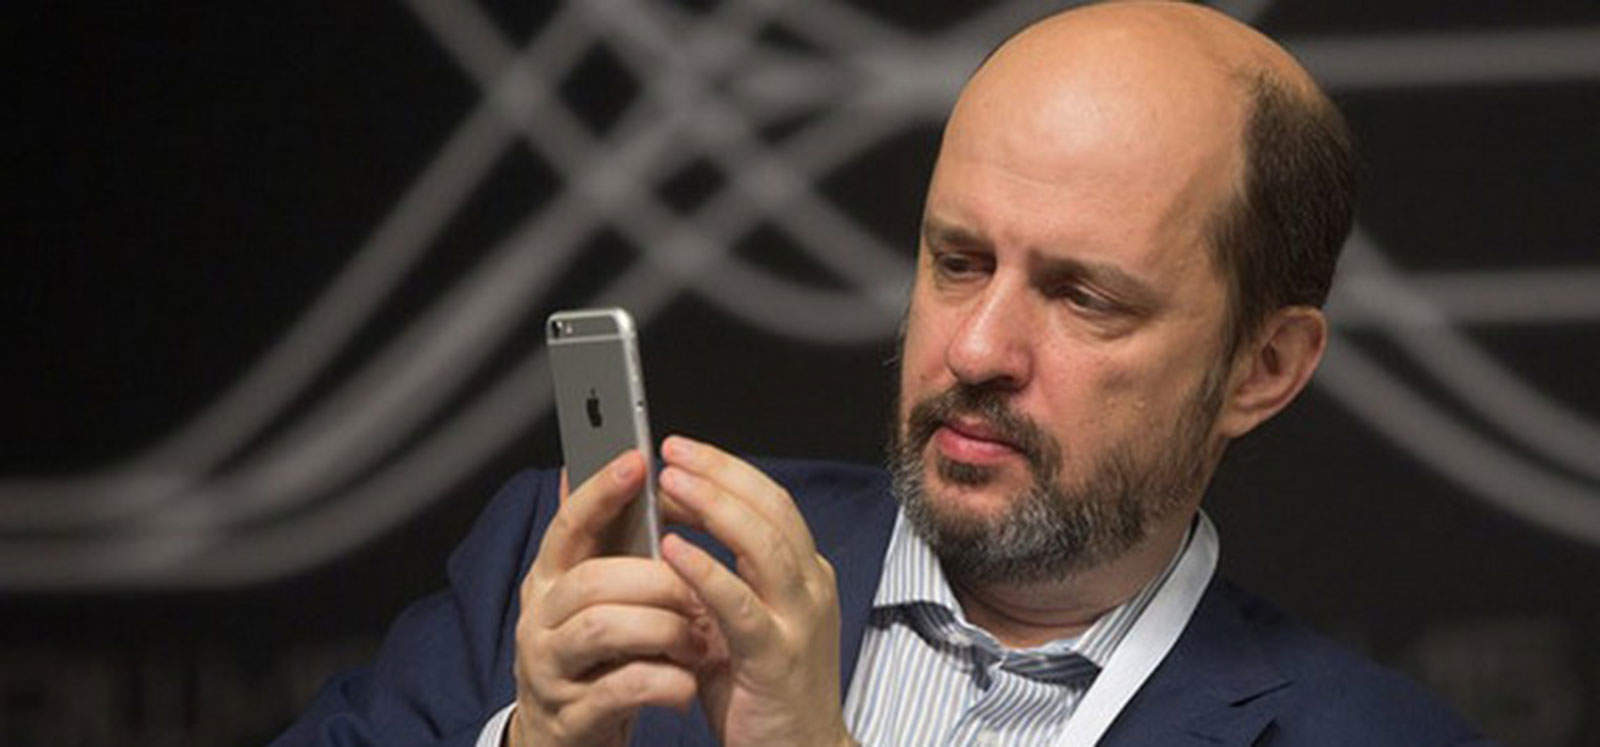 German Klimenko wants Apple and other U.S. tech companies to pay more taxes.